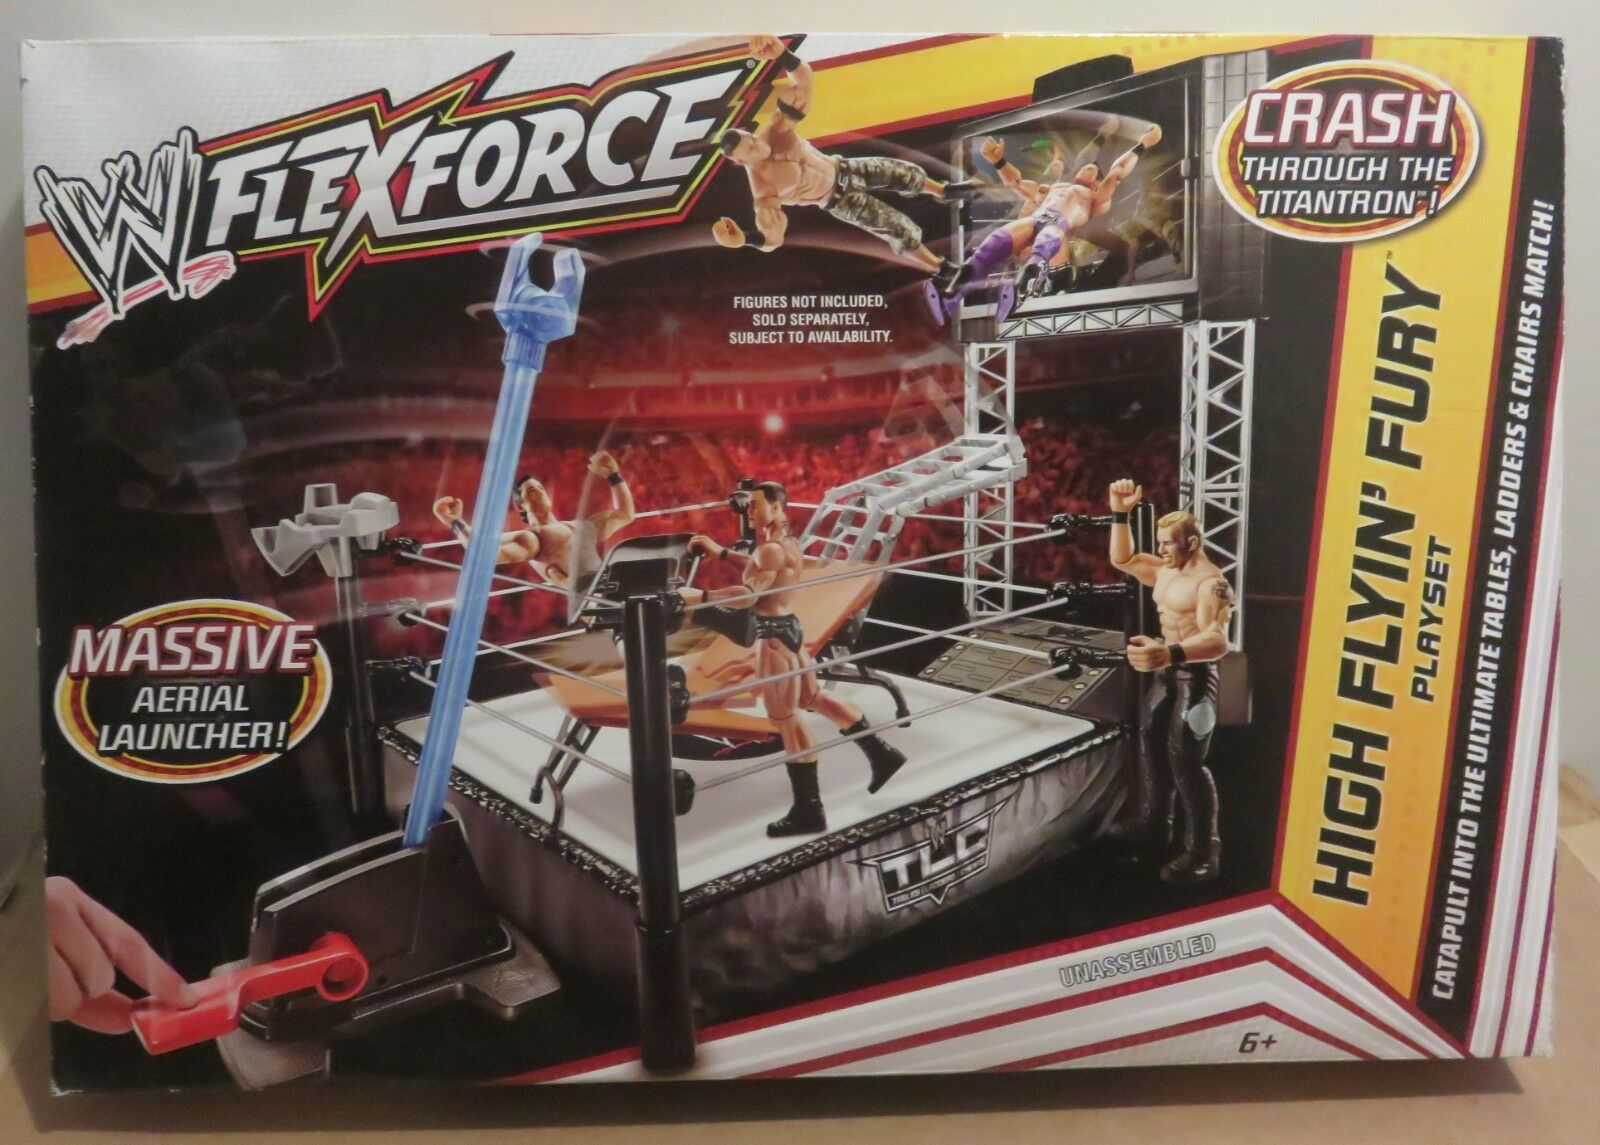 WWE Flex Force High Flyin' Fury Playset with Massive Aerial Launcher - new